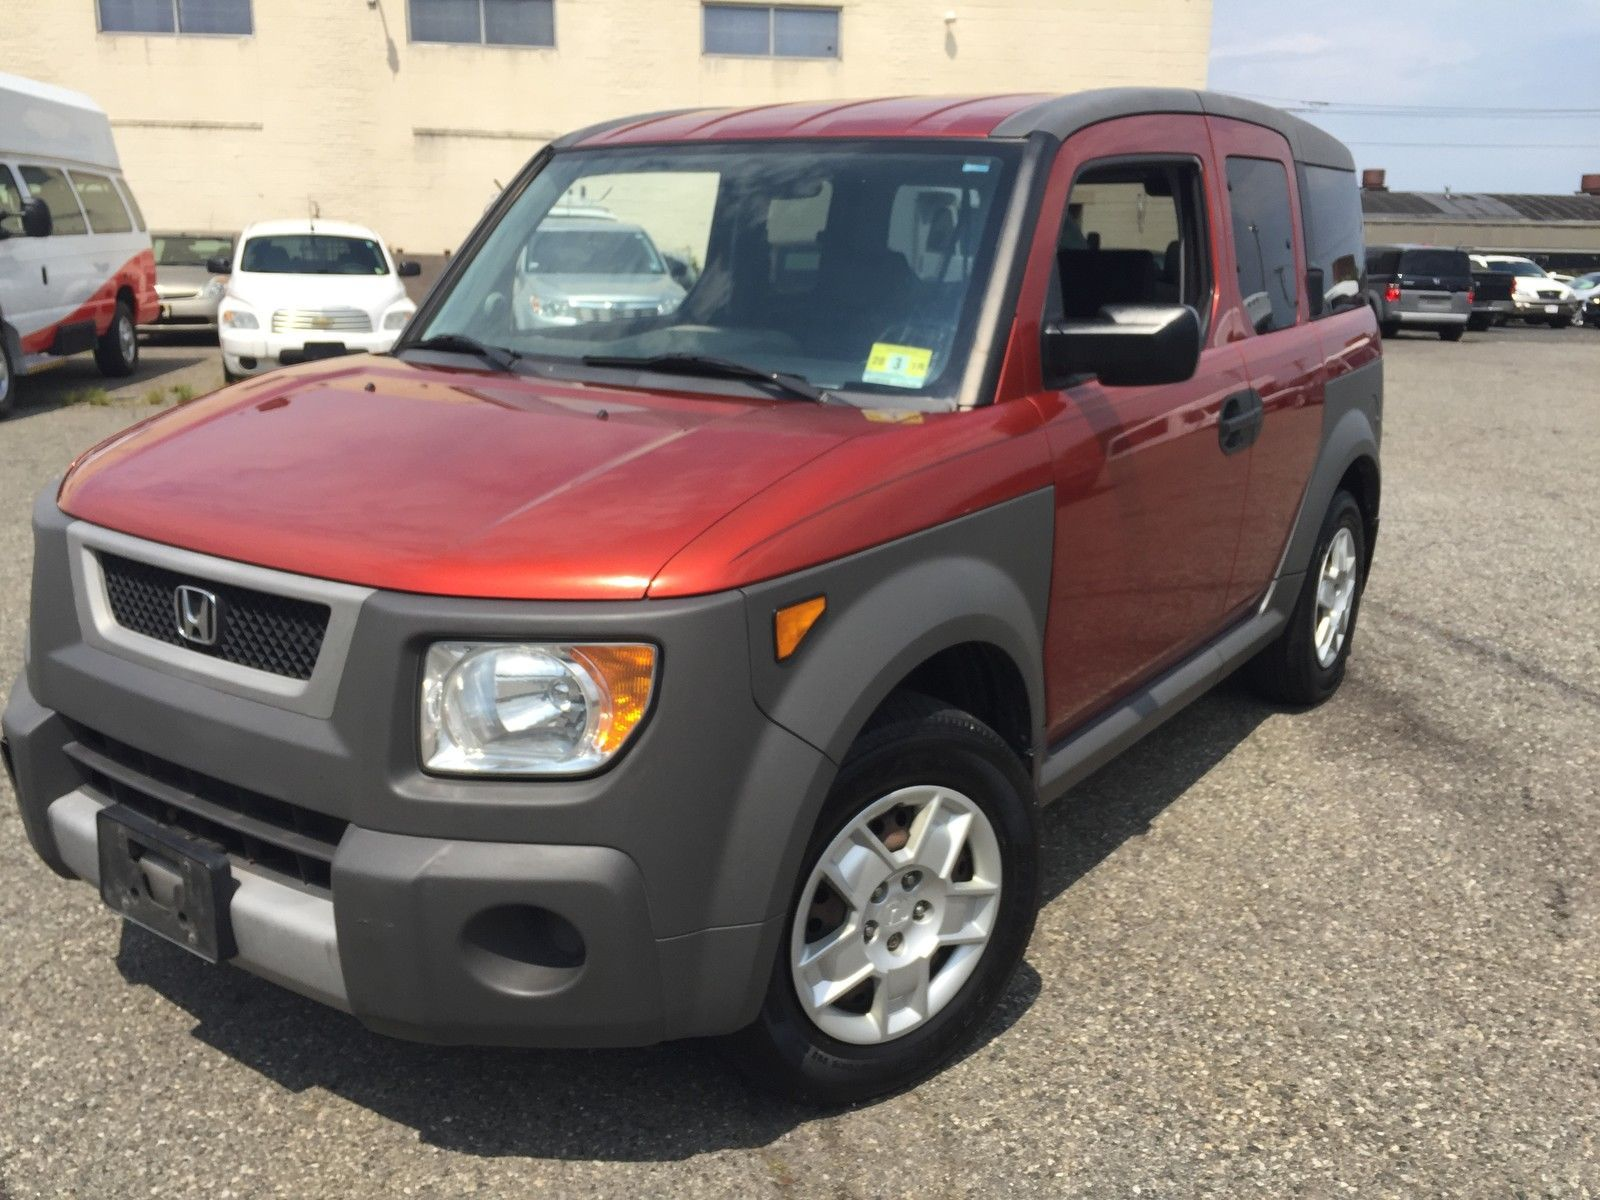 Car Brand Auctioned Honda Element 4wd Lx Mt 5 Speed Manual Transmission Car Model Honda Element All Wheel Drive Rare Find Aucti Car Model Honda Element Honda